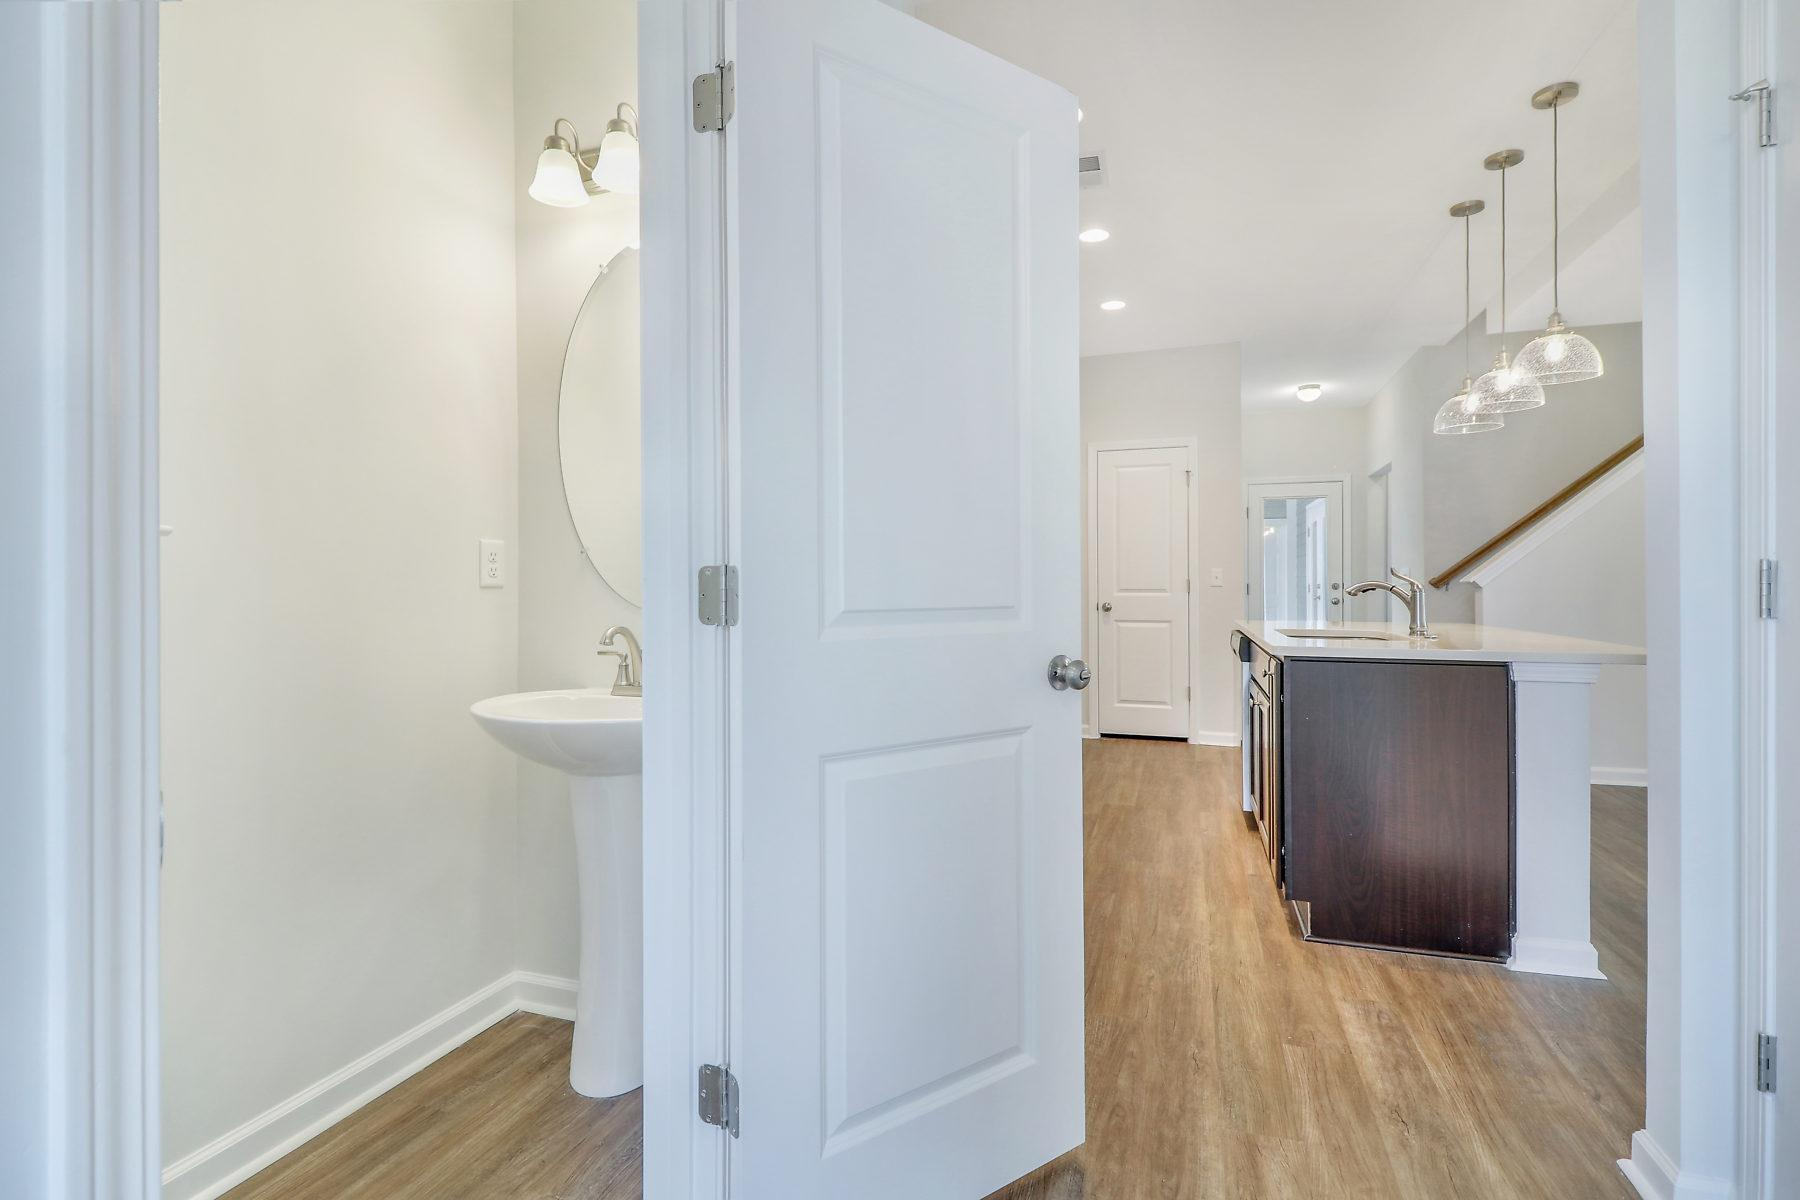 Bathroom featured in The Troup By Village Park Homes in Hilton Head, SC